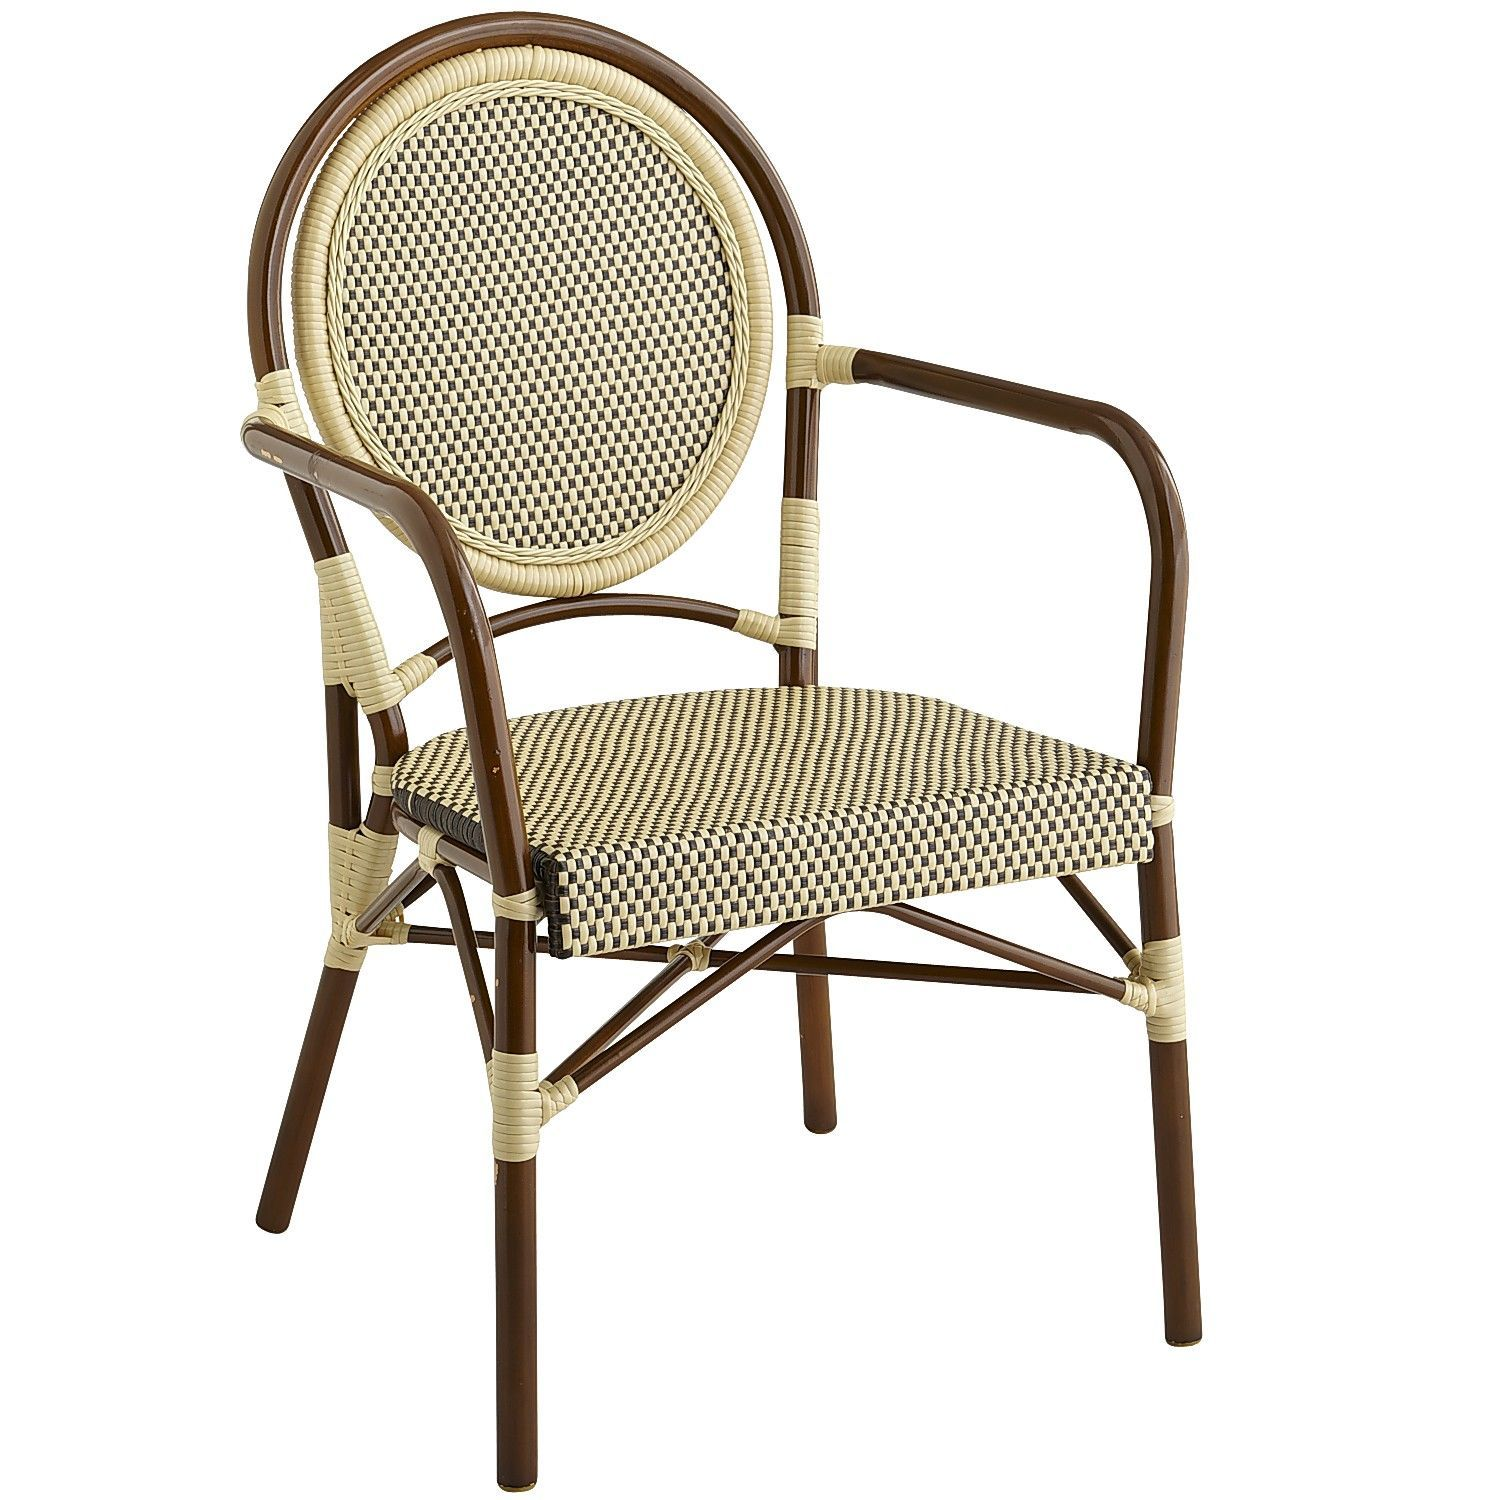 Sturdy Aluminum And Hardy, All Weather Synthetic Rattan Make A Handsome  Couple In This Striking Hand Woven Bistro Chair. And With A Solid  Foundation Like ...